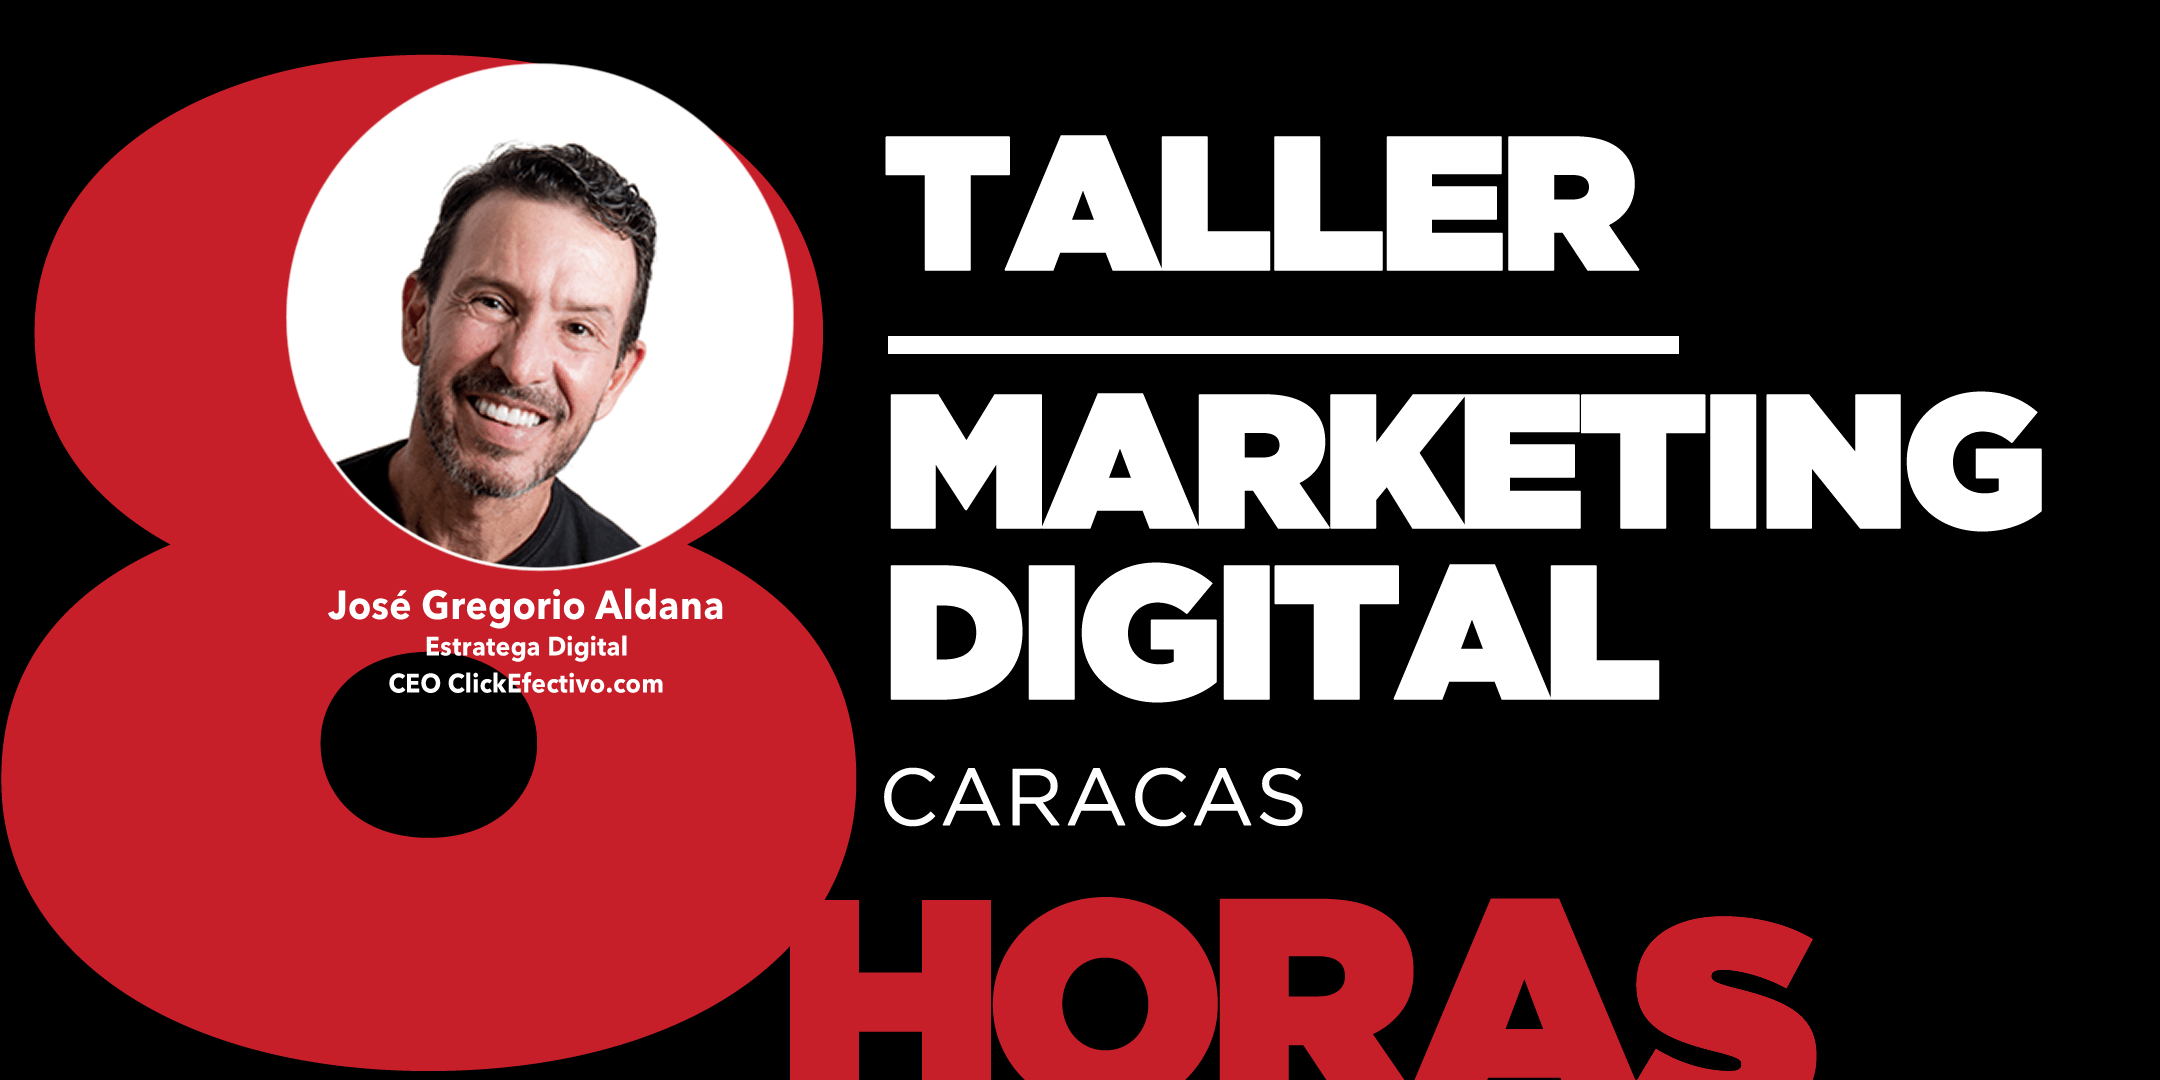 Taller de Marketing Digital en Caracas